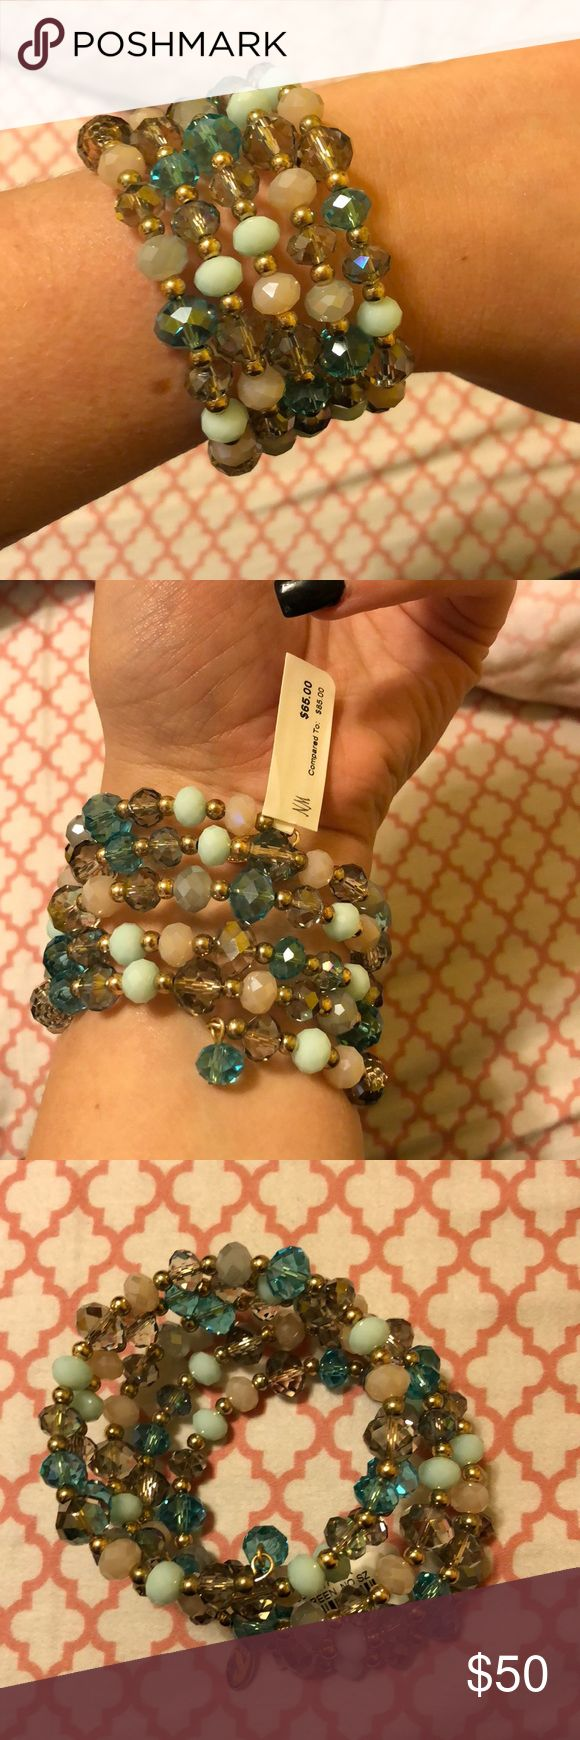 NWT Wrap Around Beaded Bracelet Gold and turquoise multi-color beaded bracelet.  Wrap around- all one piece. Never worn with tags. Neiman Marcus Jewelry Bracelets